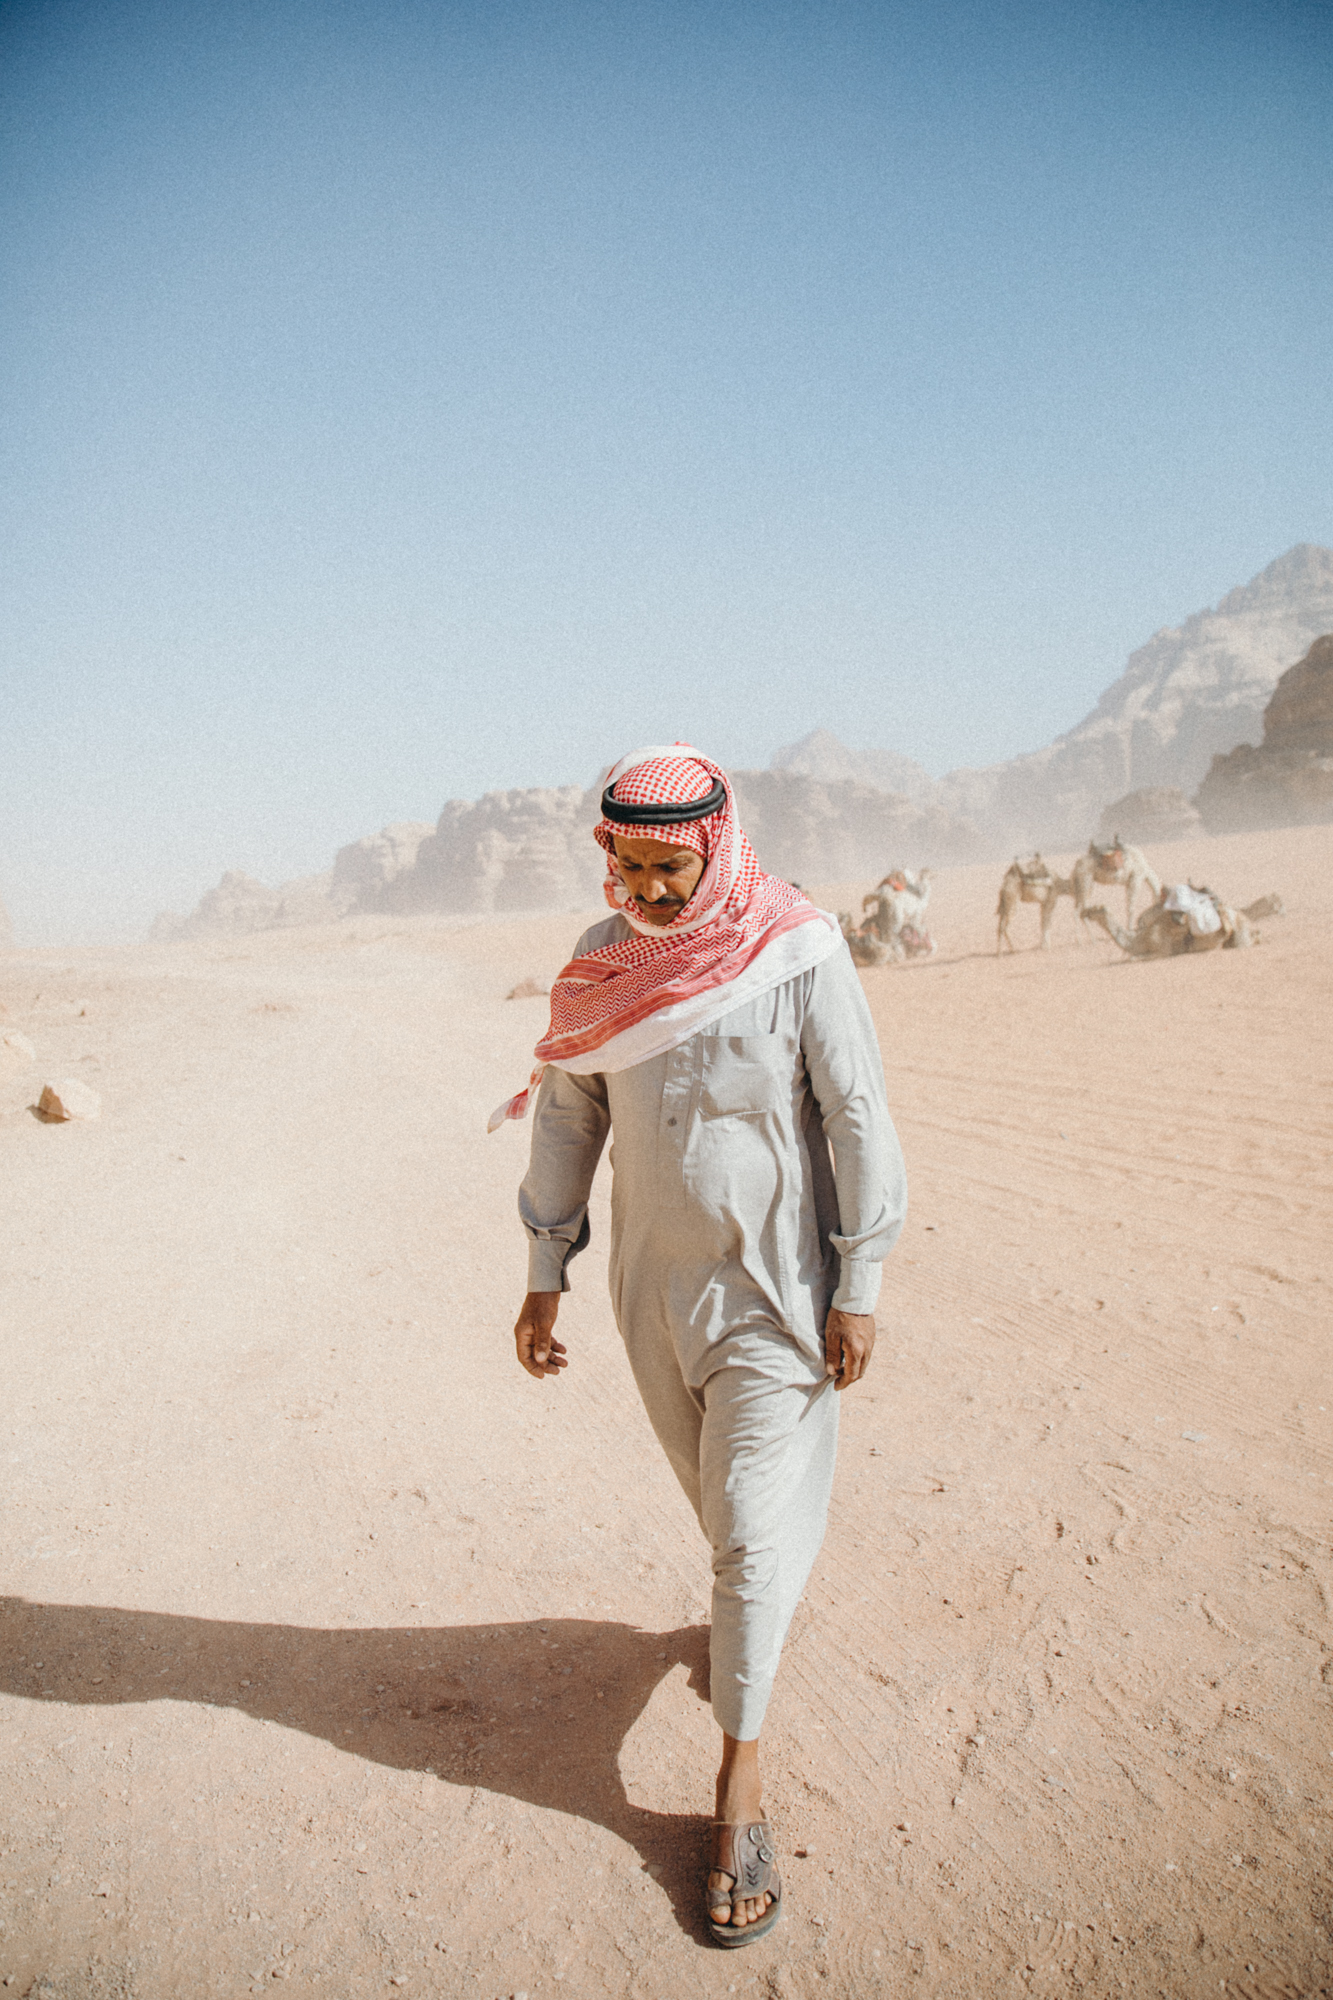 A Bedouin man and his camels.